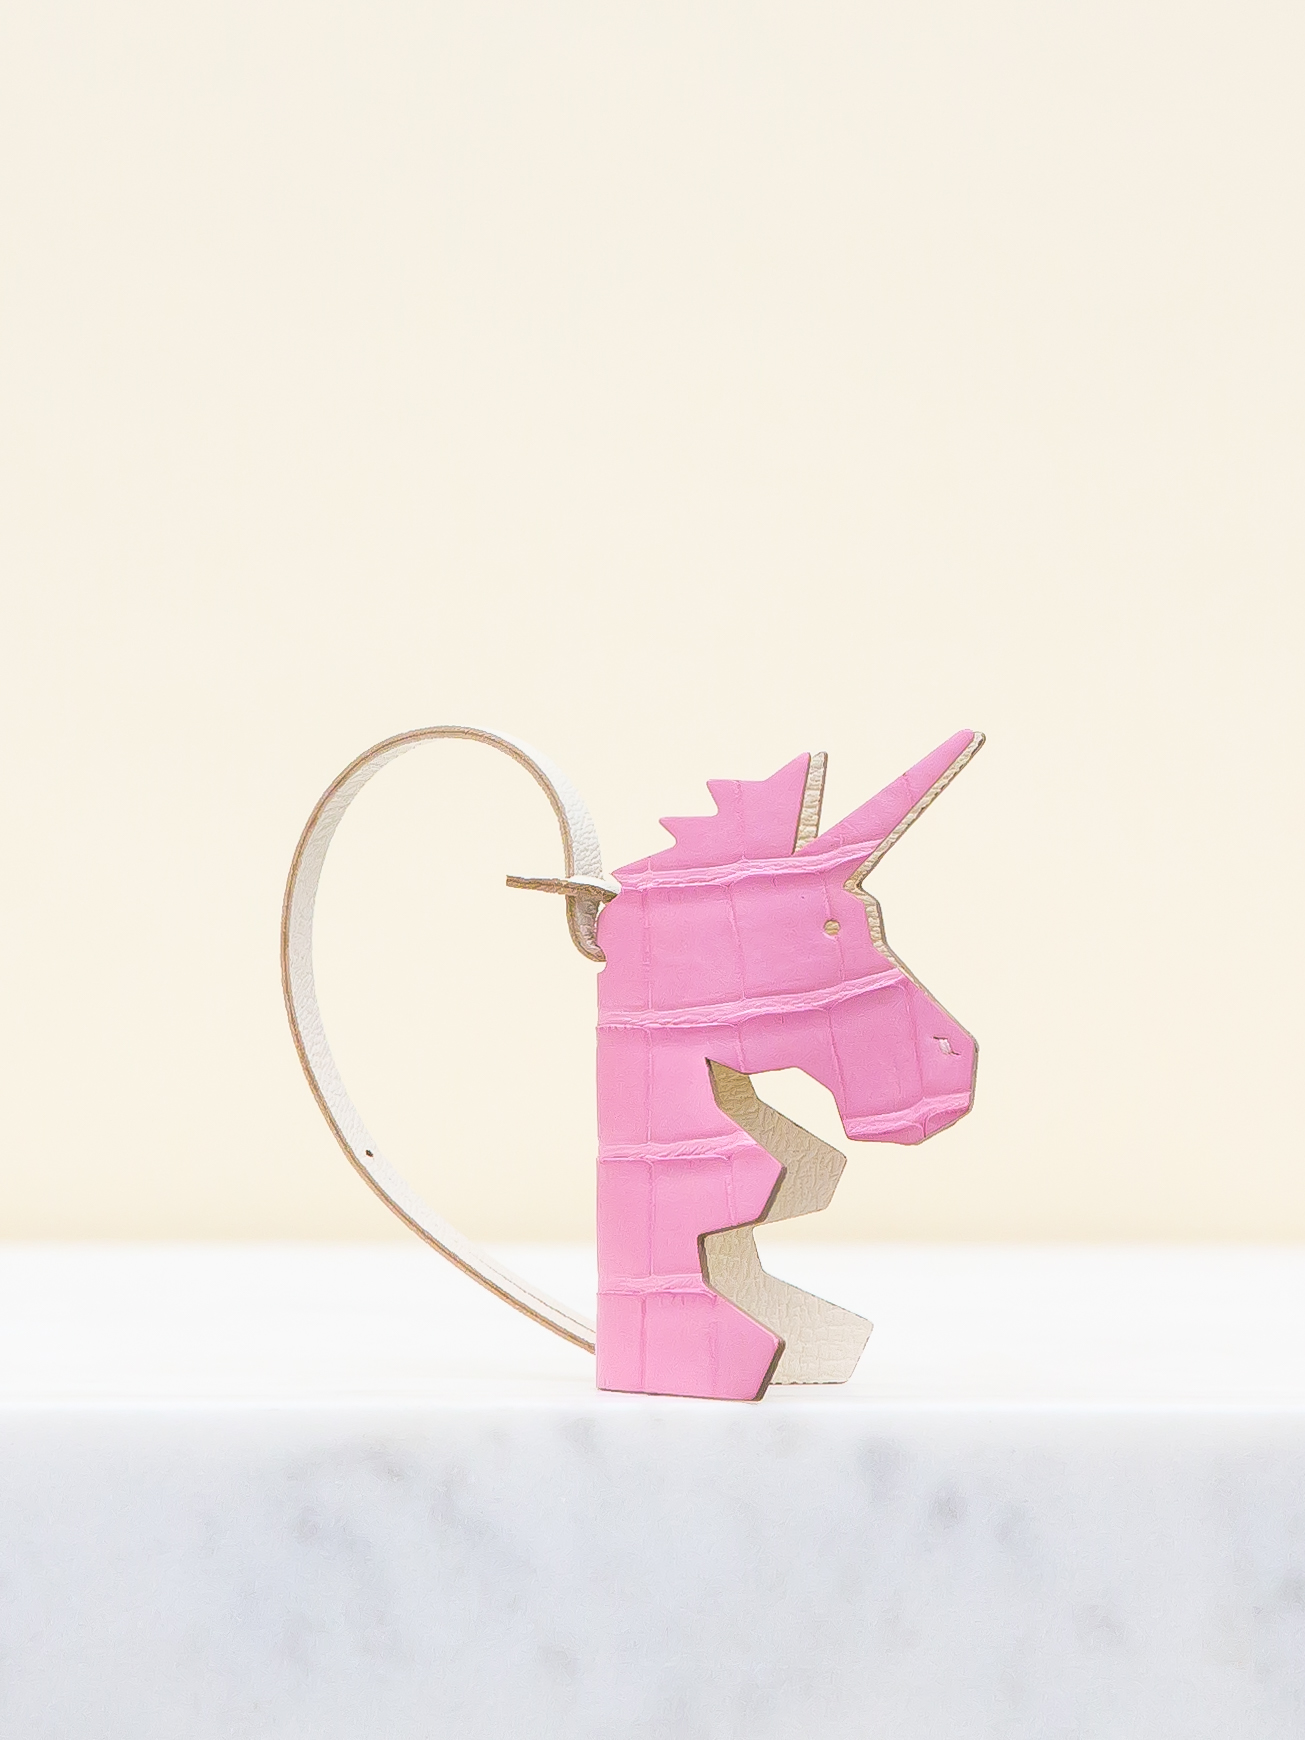 Magique Bag Charm - Pink by Chance Mystère on curated-crowd.com